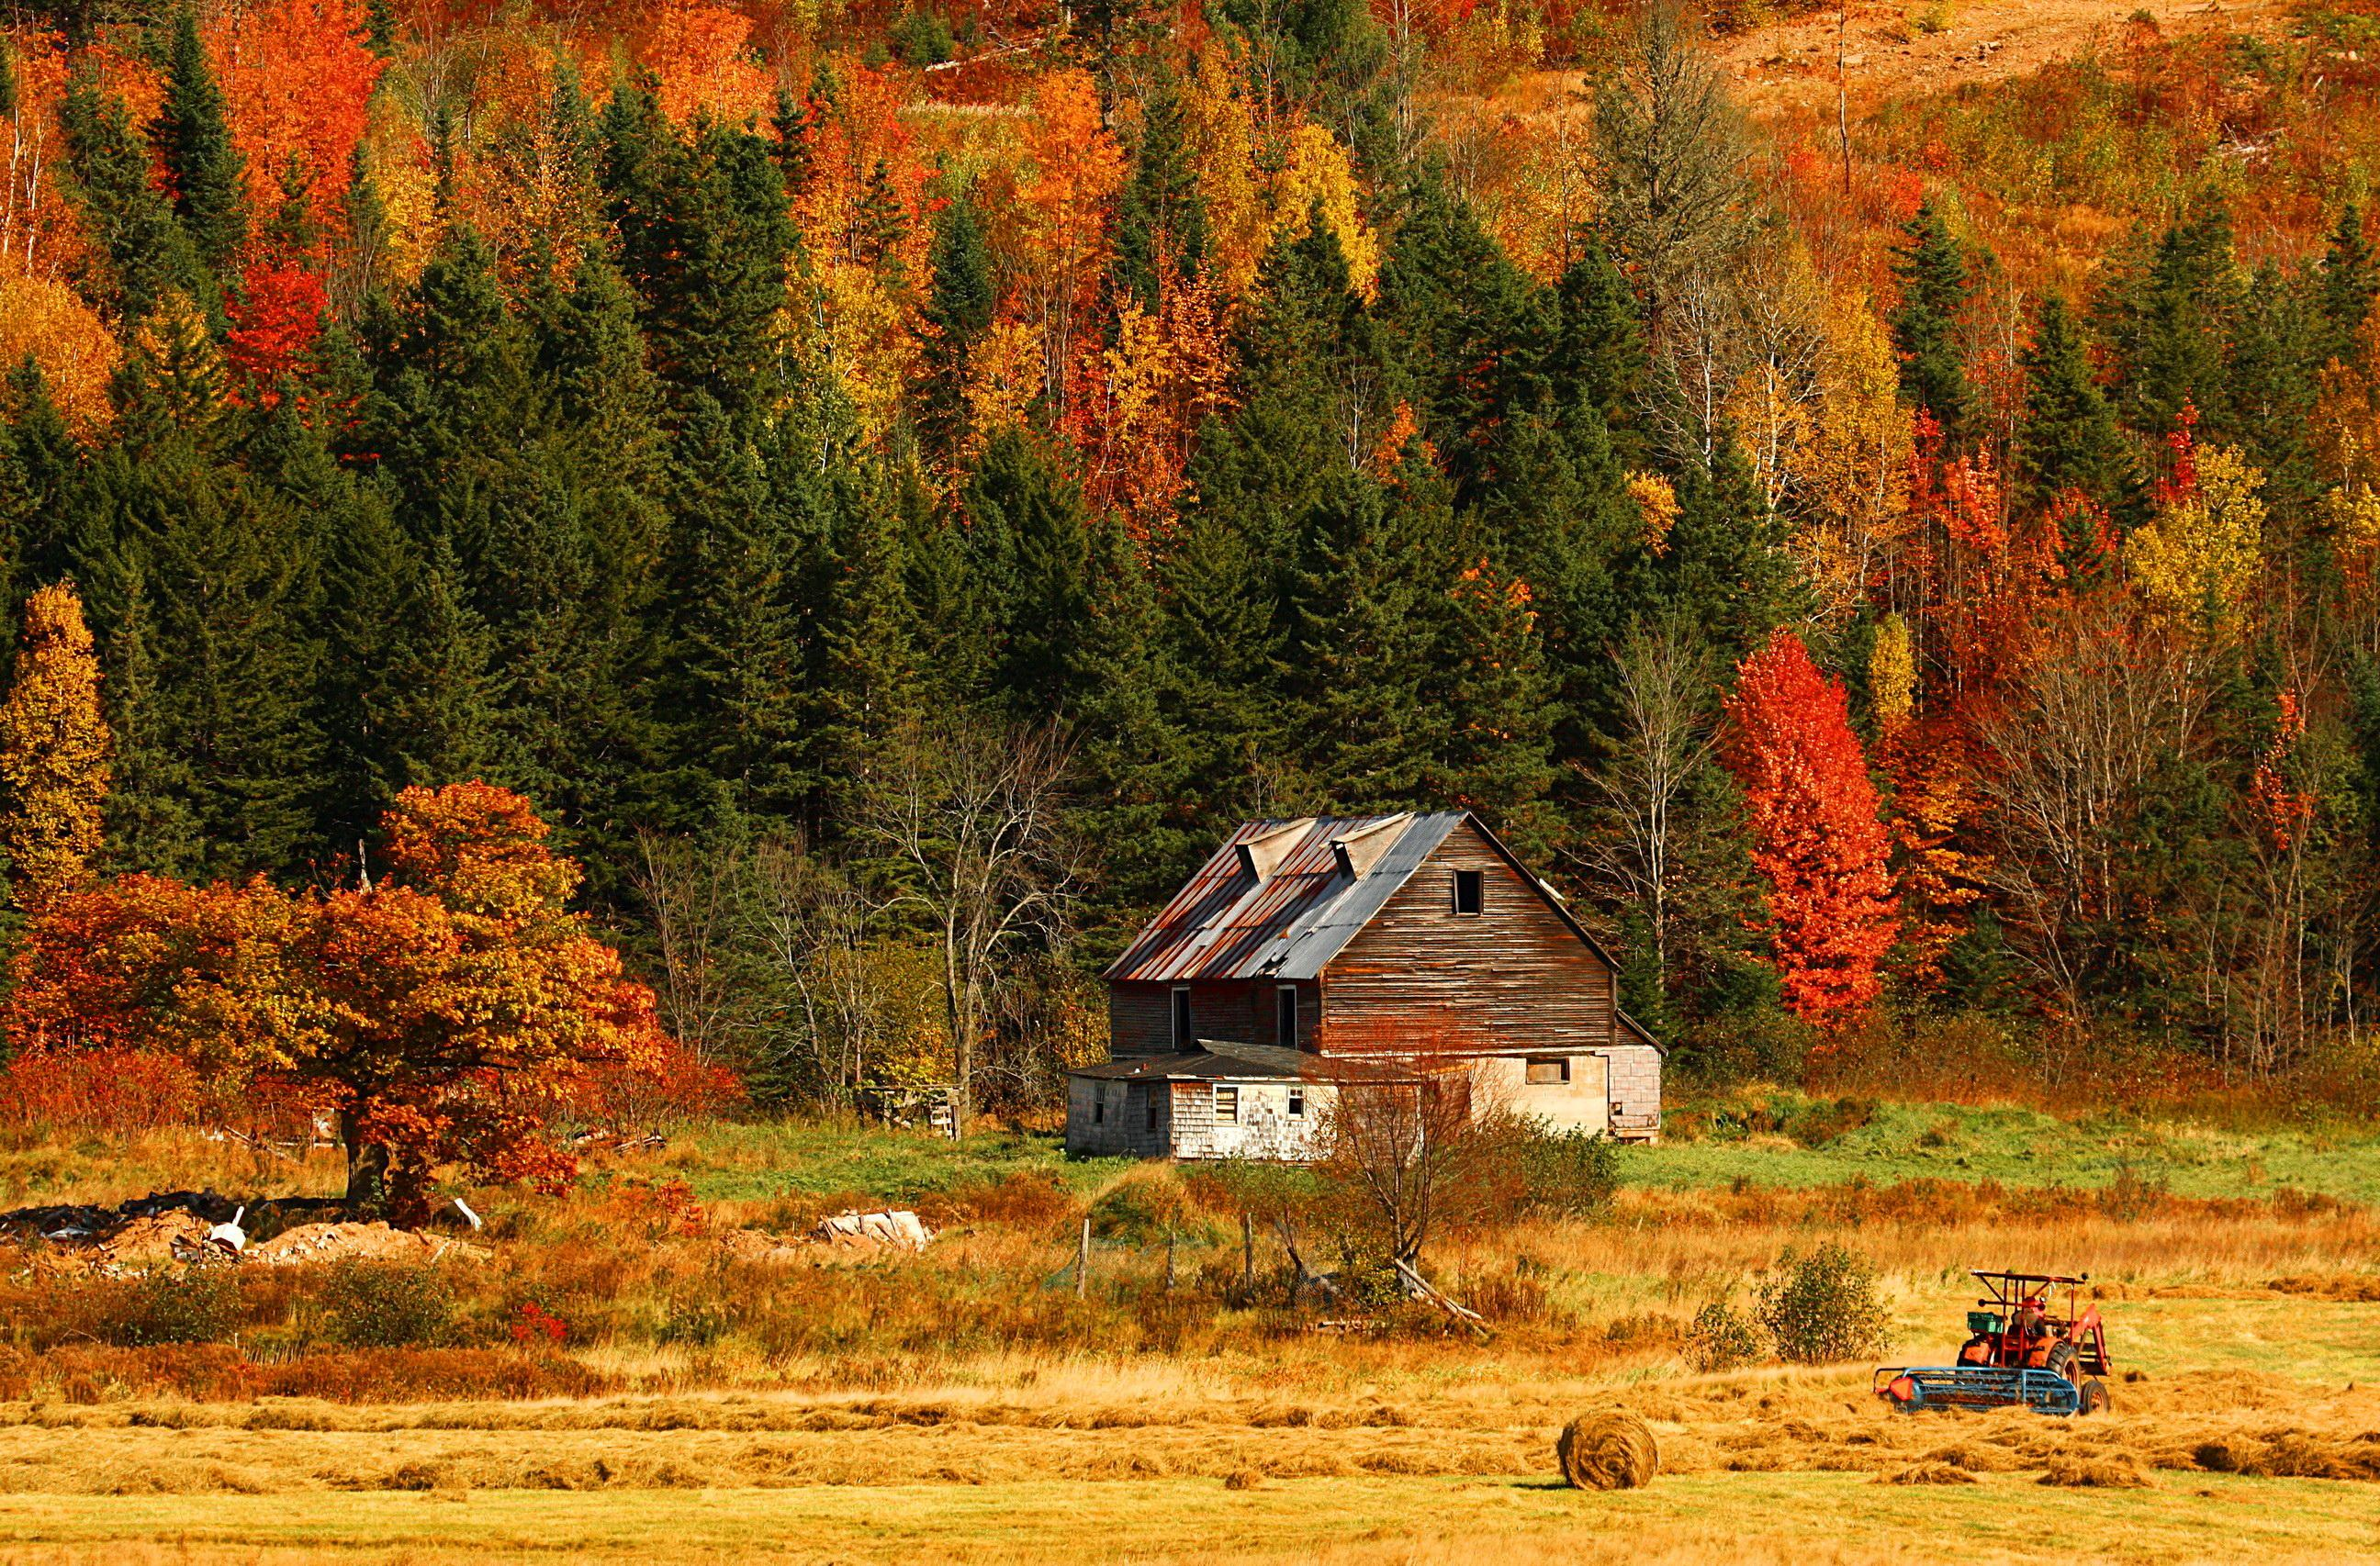 Autumn Mountain Wallpapers Mobile - Scerbos com